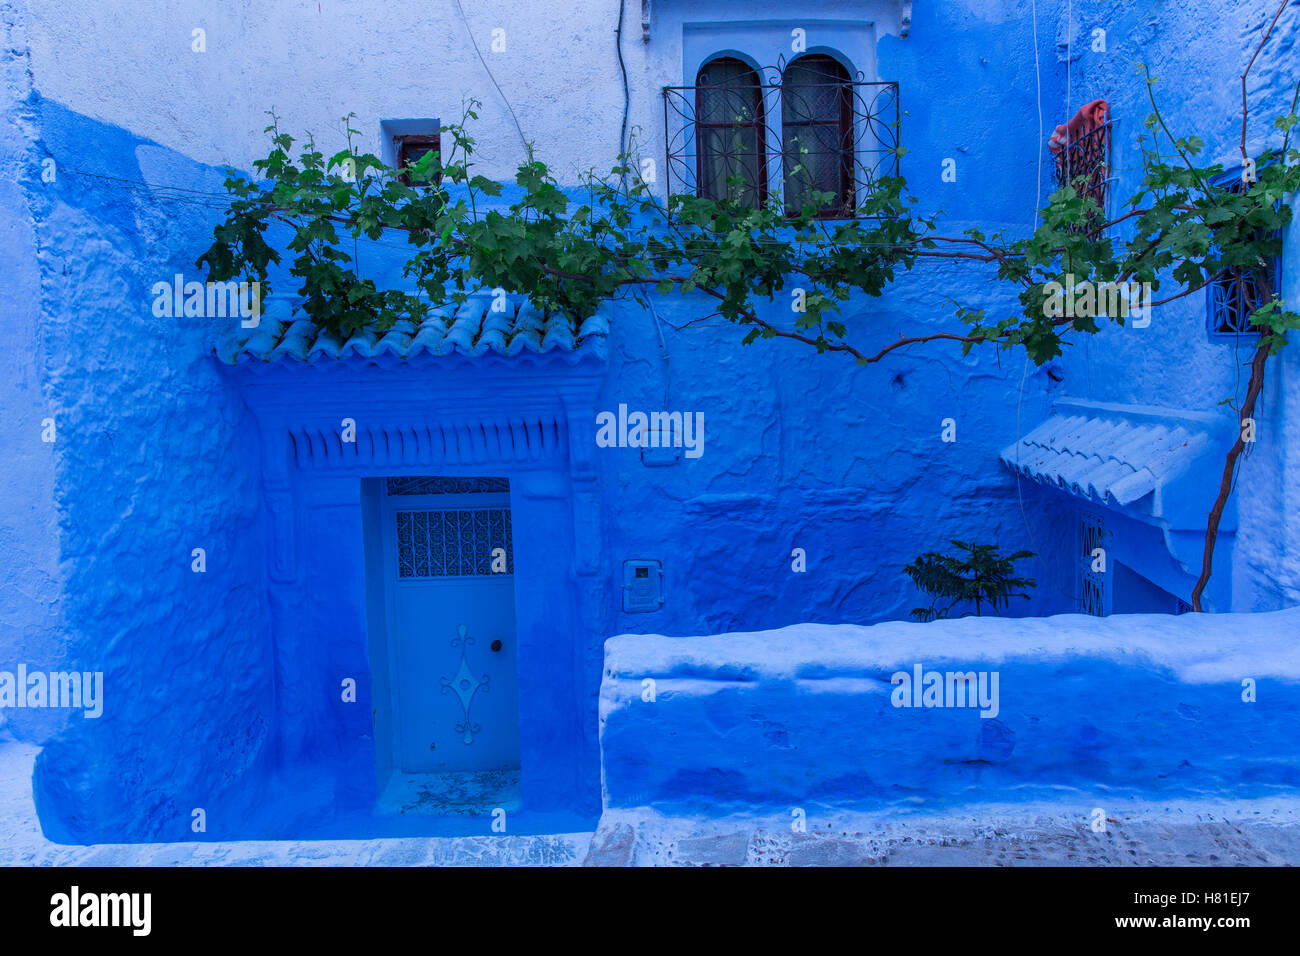 Morocco,Chefchaouen, architecture of indigo limewashed buildings - Stock Image